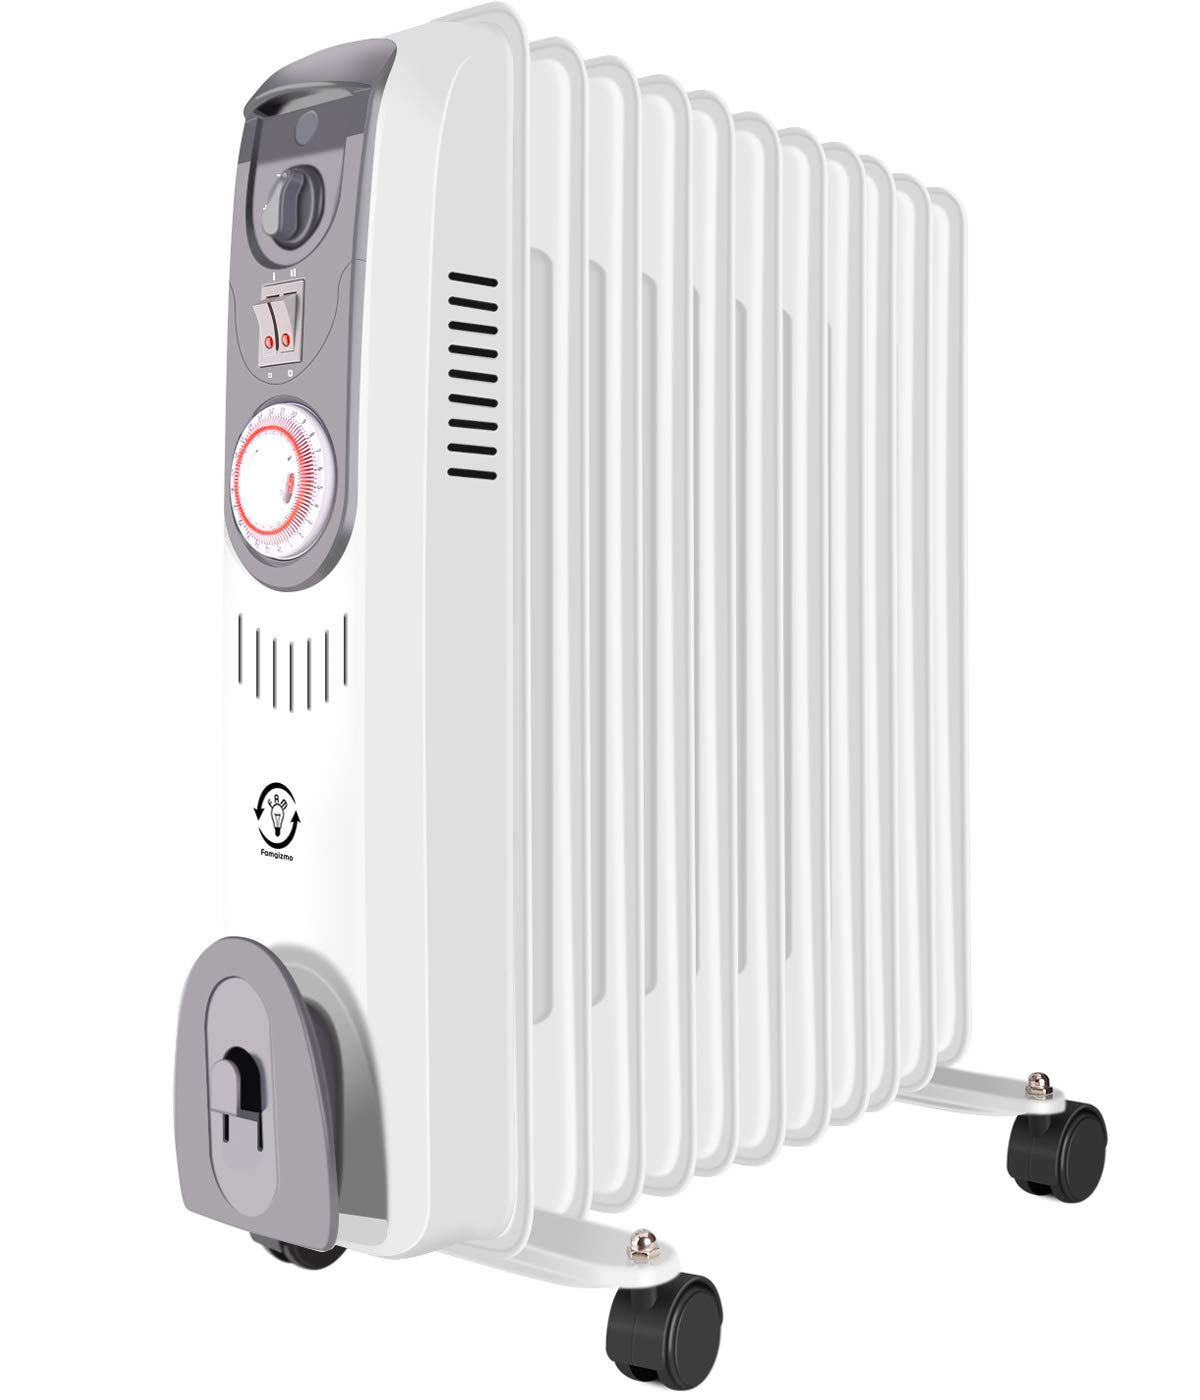 MODERN LIFE 3kw 11 Fins Oil Filled Radiator Portable Electric Heater with Adjustable Thermostat, 3 Heat Settings, 24 Hour Timer, Thermal Safety Cut off and Overheat Protection